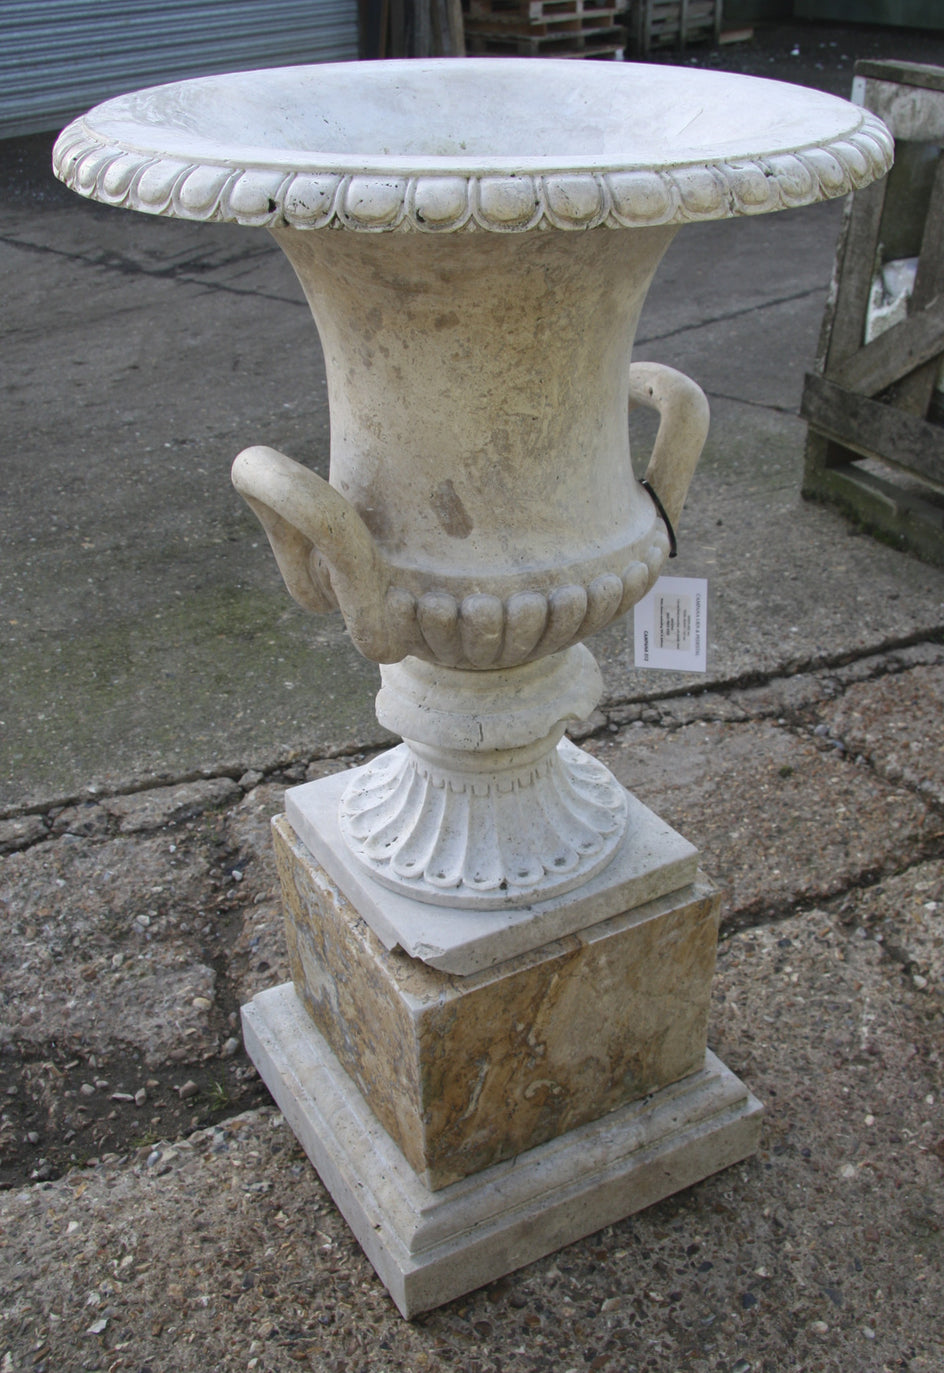 Campana urn & pedestal / travertine 013 - 1142 mm (H)